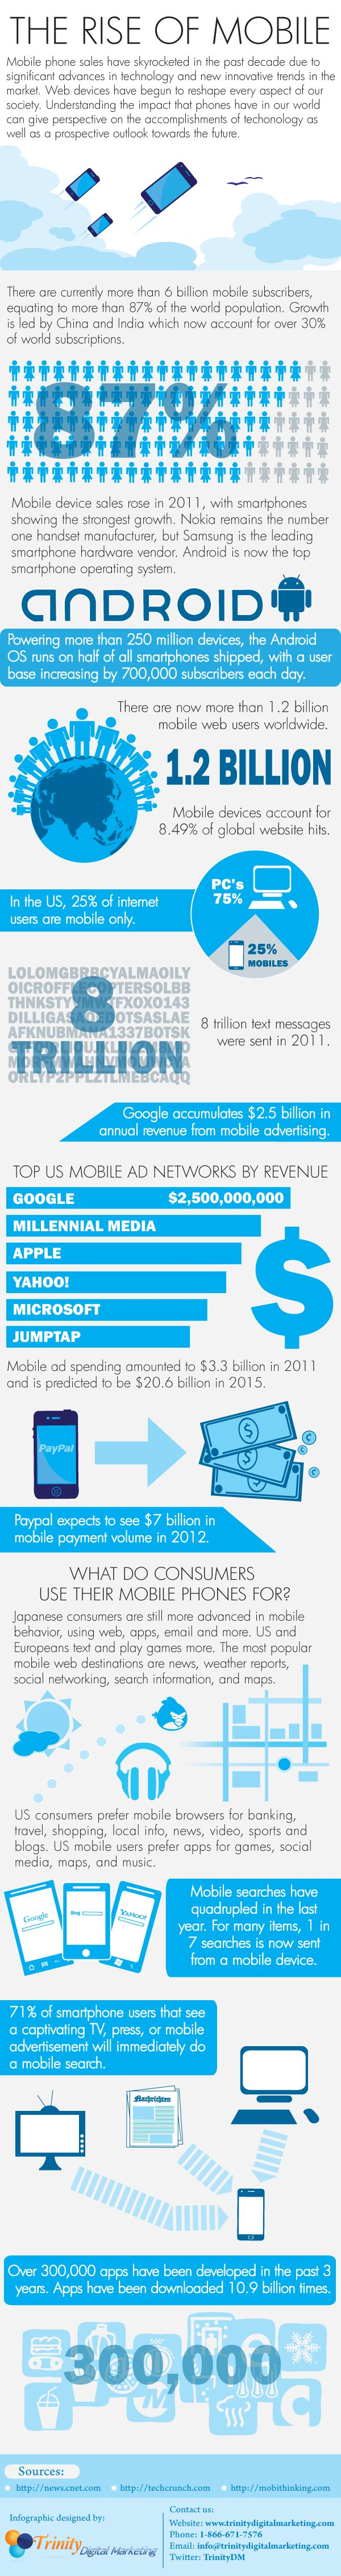 The Rise of Mobile and why we need to pay attention to it!